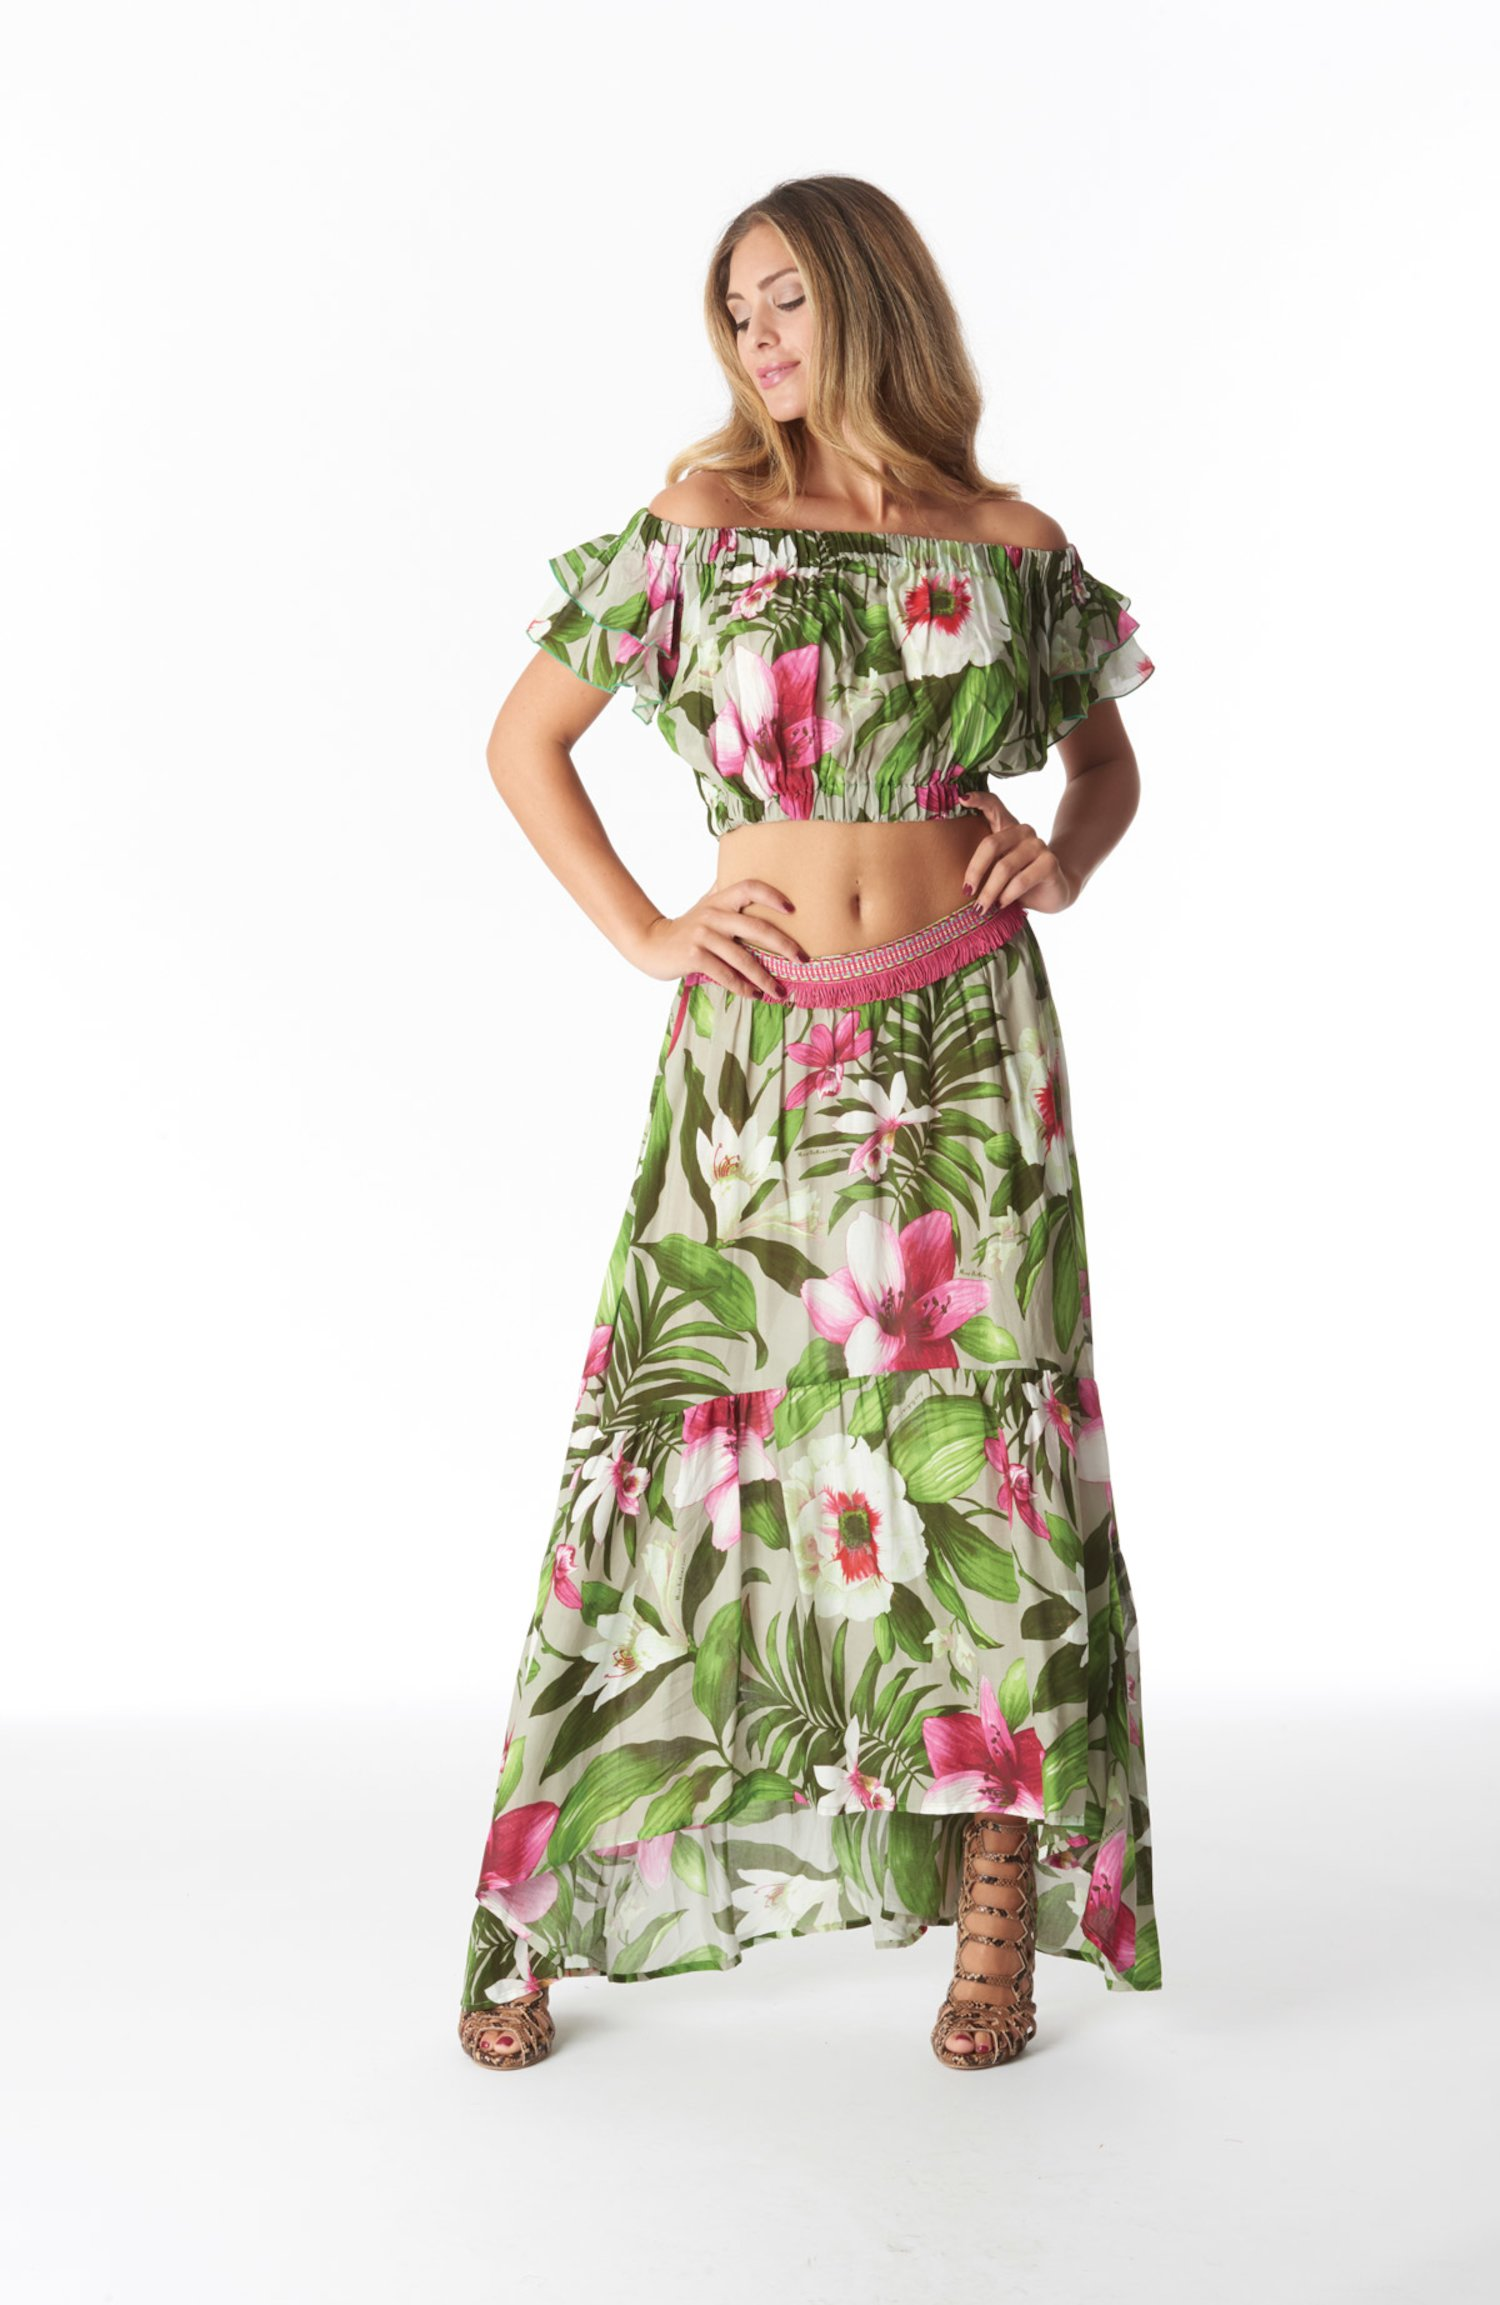 LONG SKIRT TRIMMINGS BELT - Tropical Flowers Beige